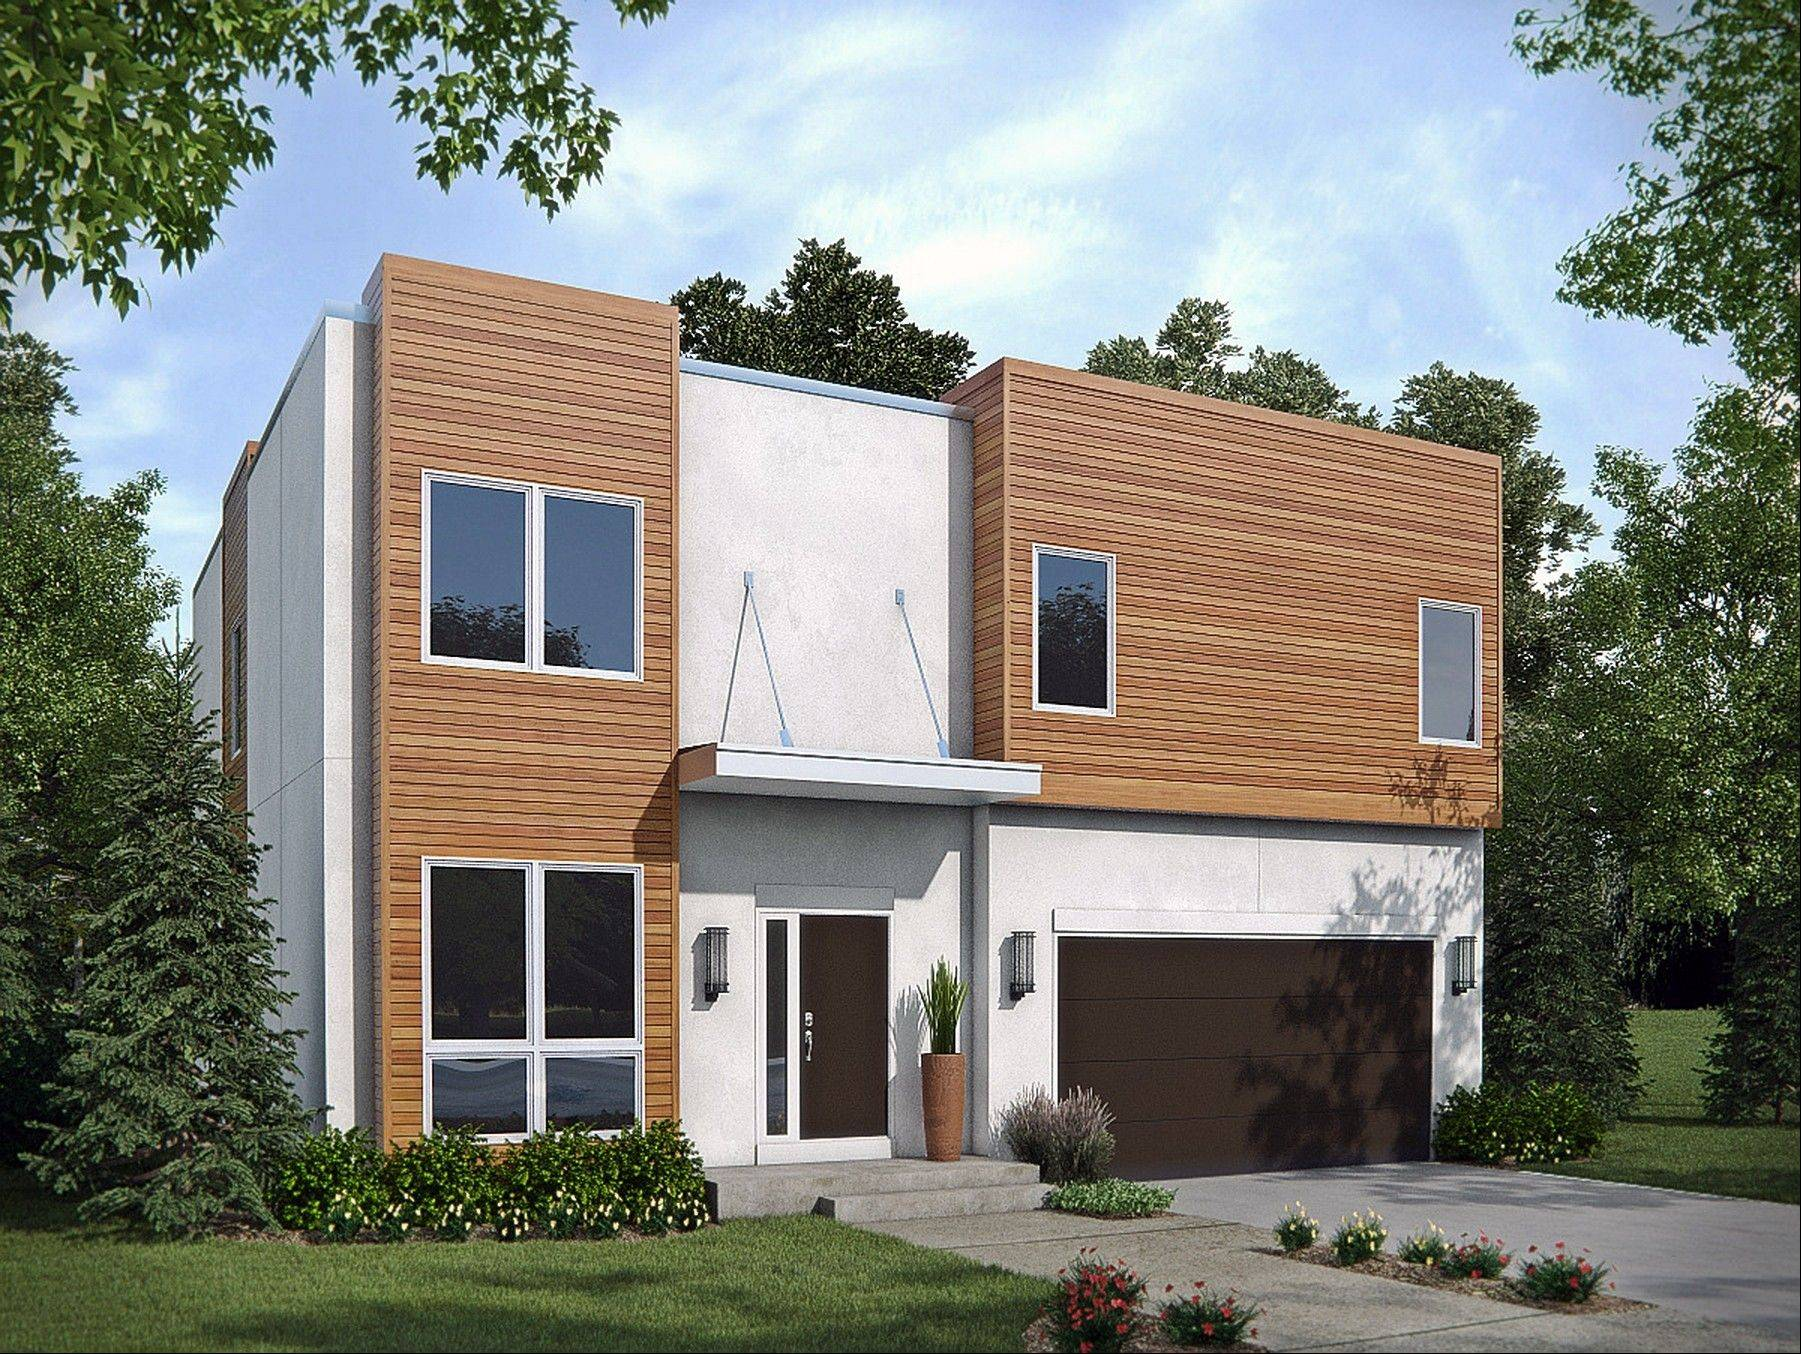 Airhart Construction is working on a series of Mid-Century Modern homes that can be built on property in DuPage County.